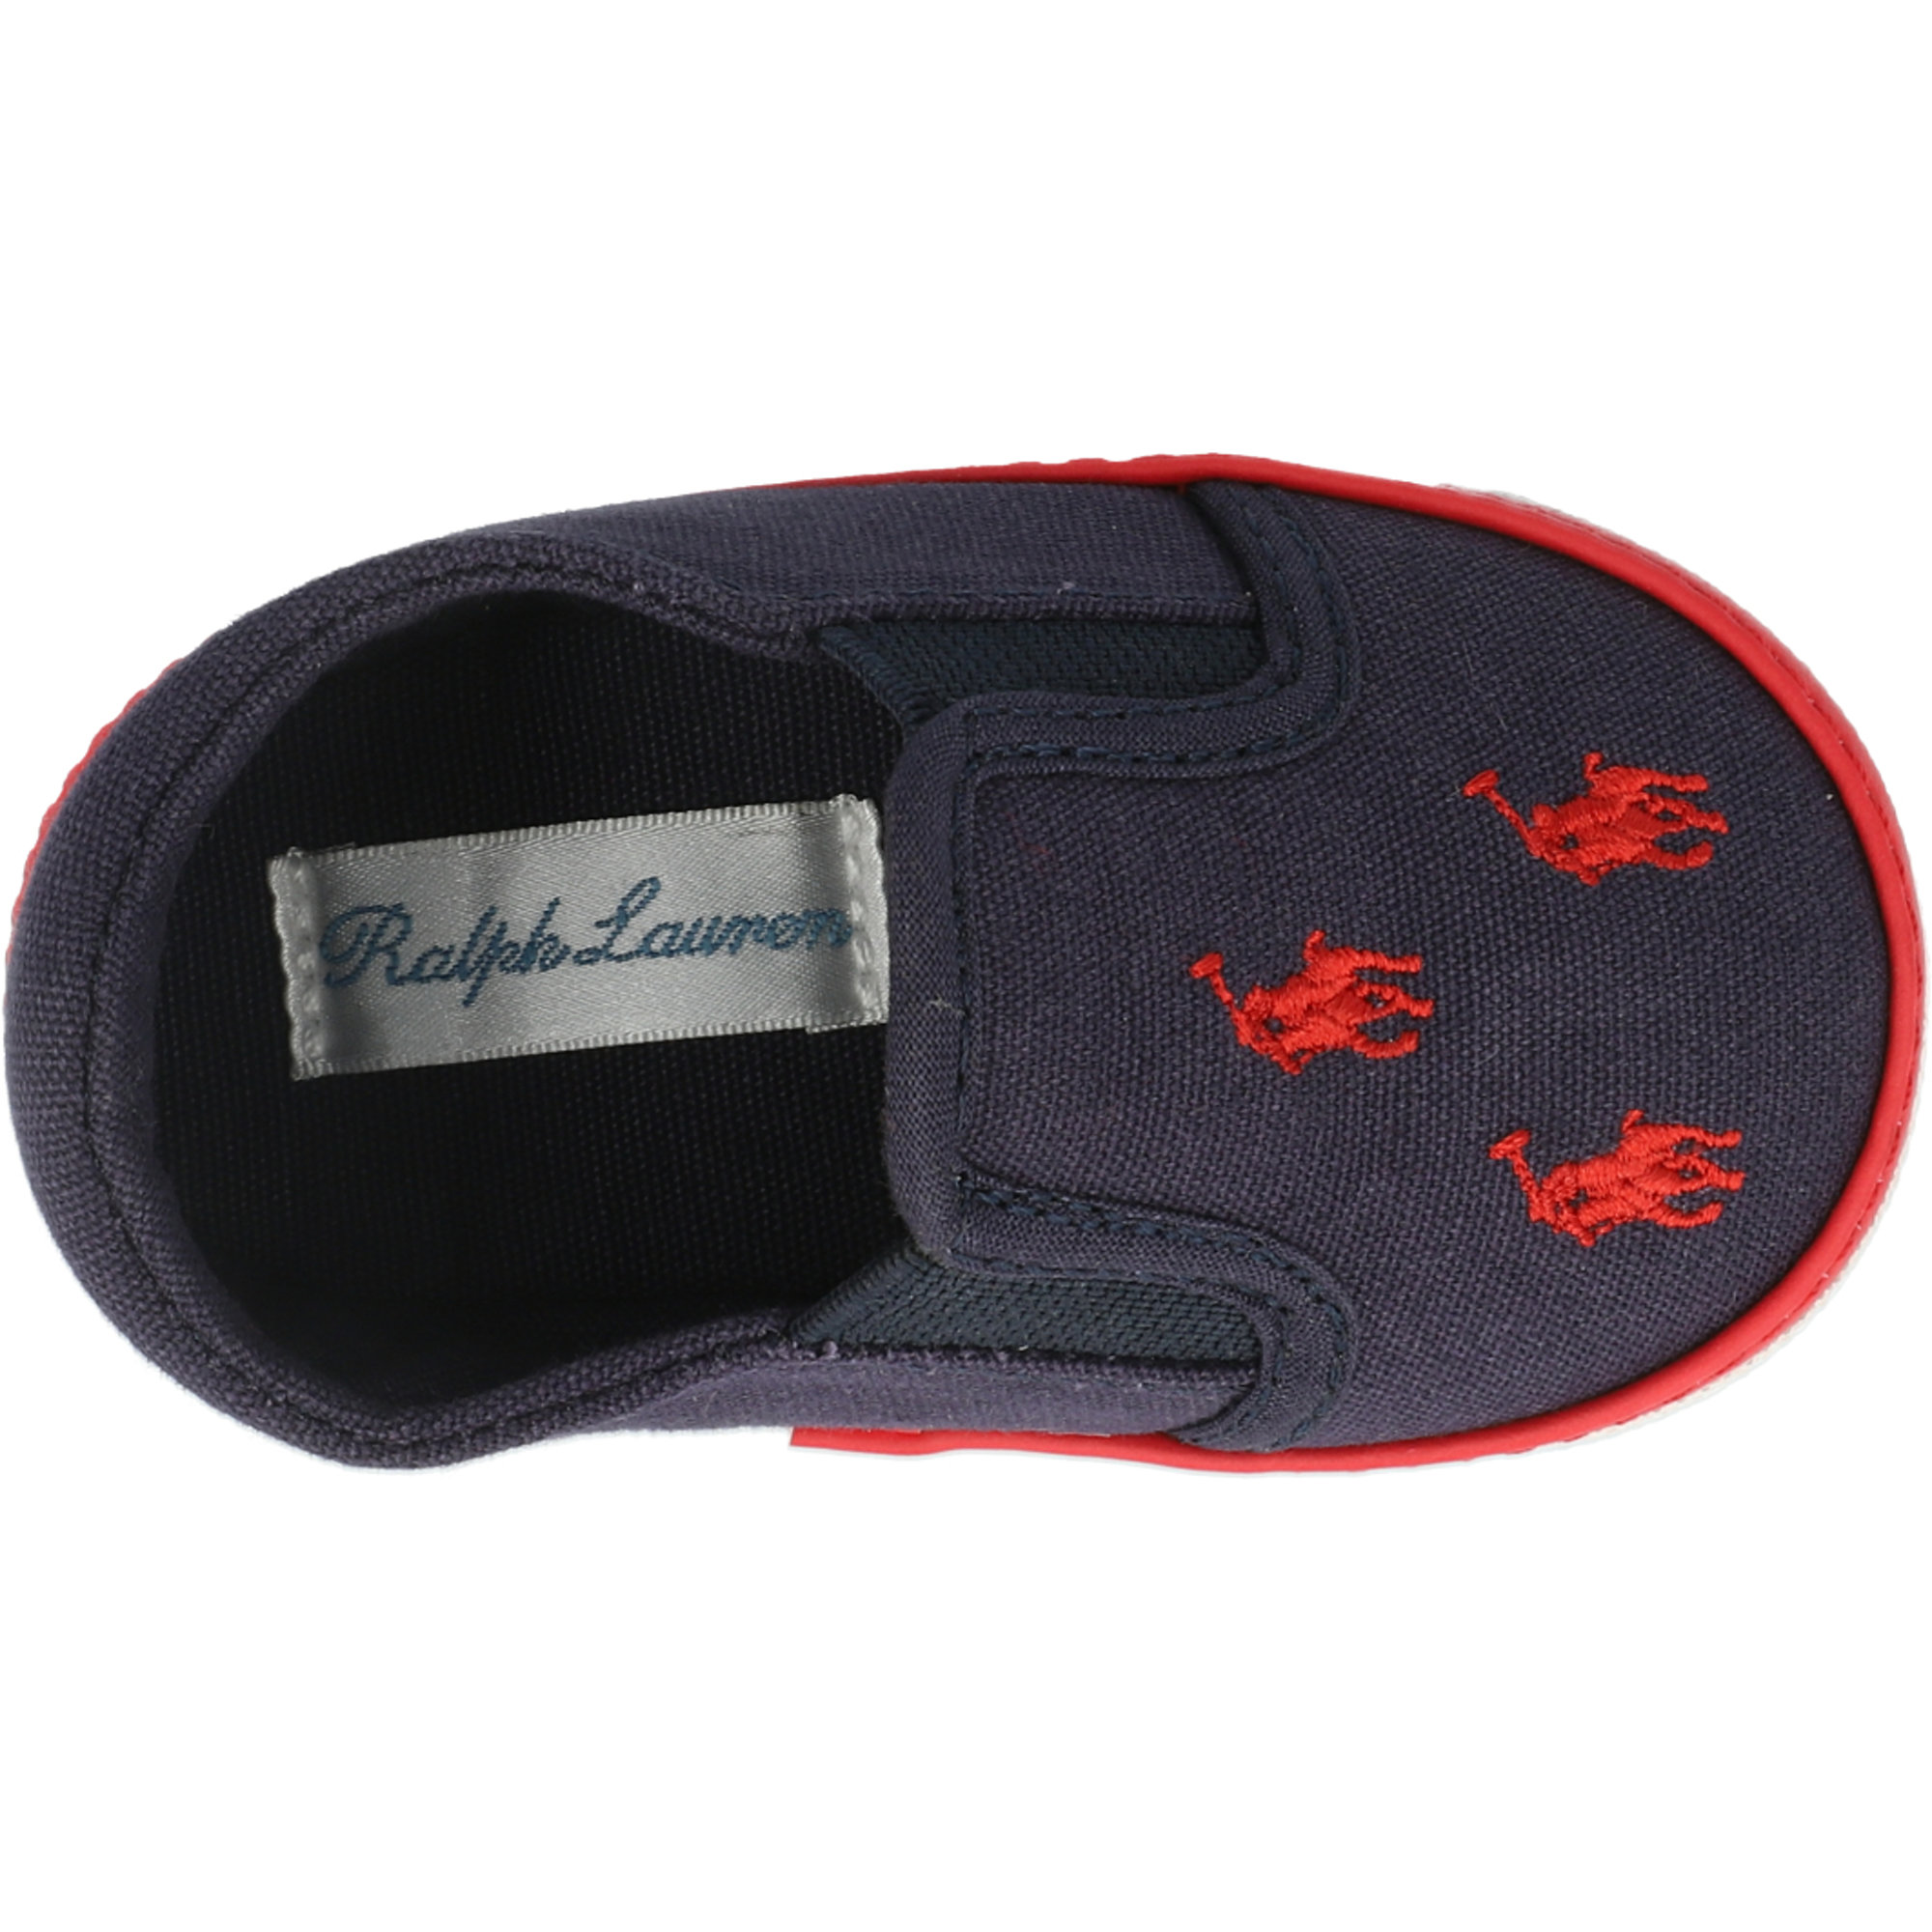 Polo Ralph Lauren Bal Harbour Repeat Layette Navy/Red Canvas